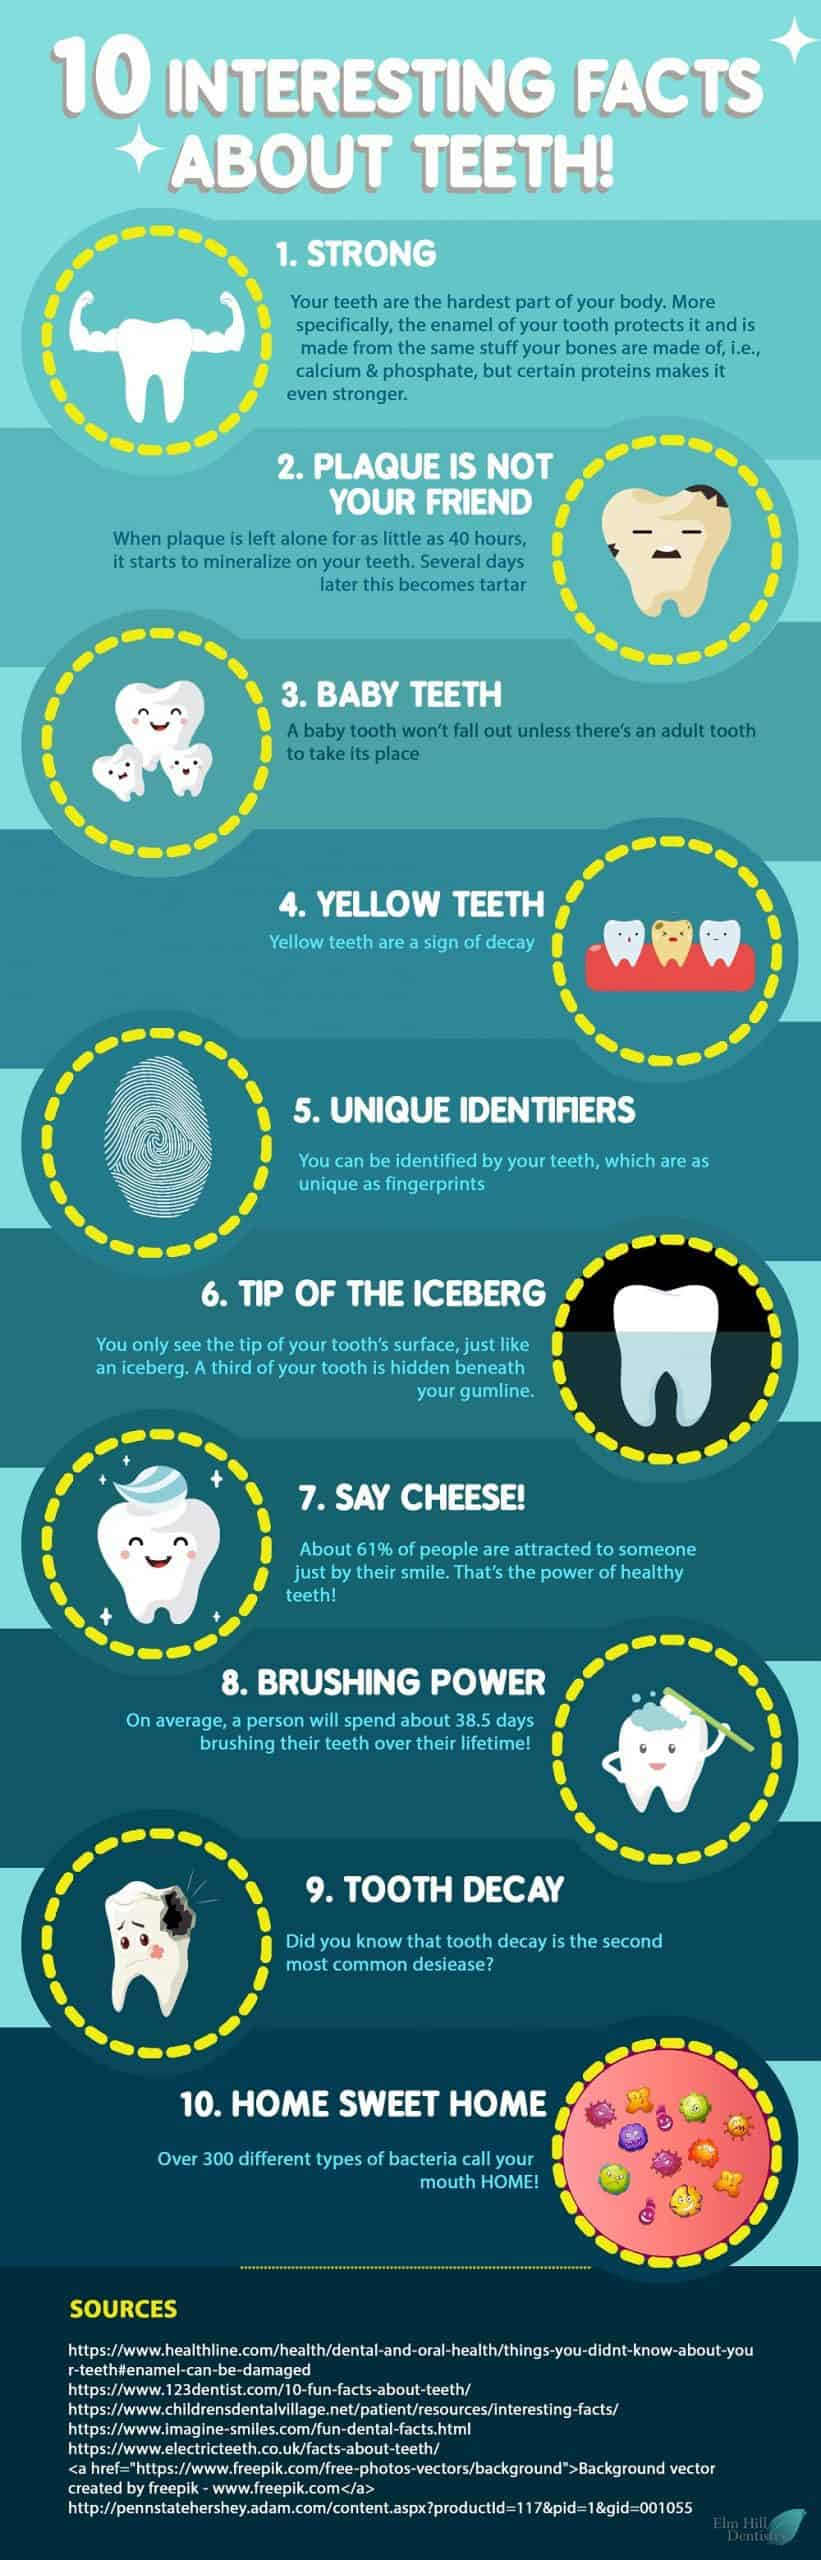 Interesting Facts About Teeth Infographic